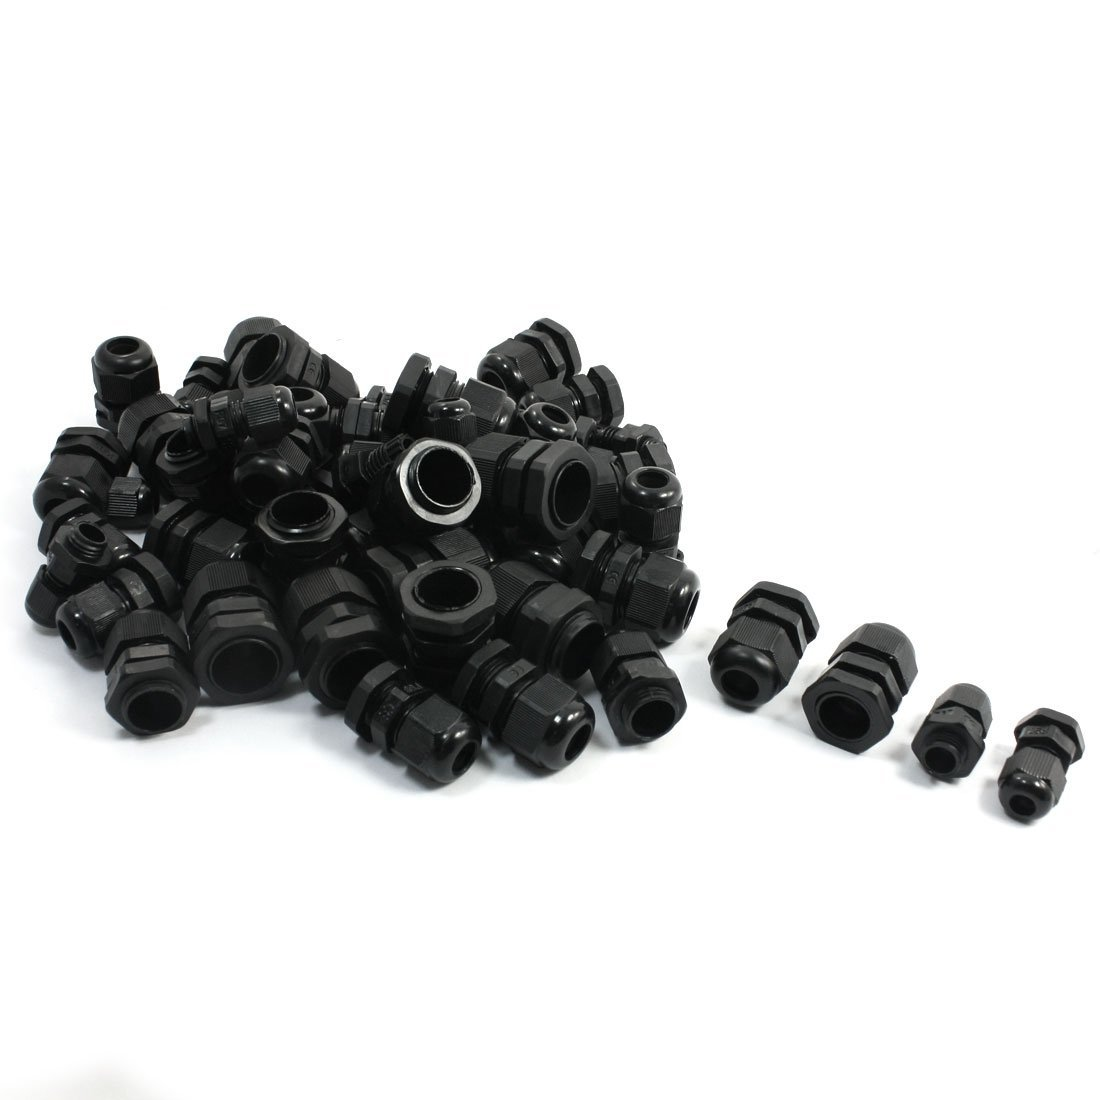 50PCS PG7 PG9 PG11 PG13.5 PG16 Black Plastic Waterproof Cable Glands цена